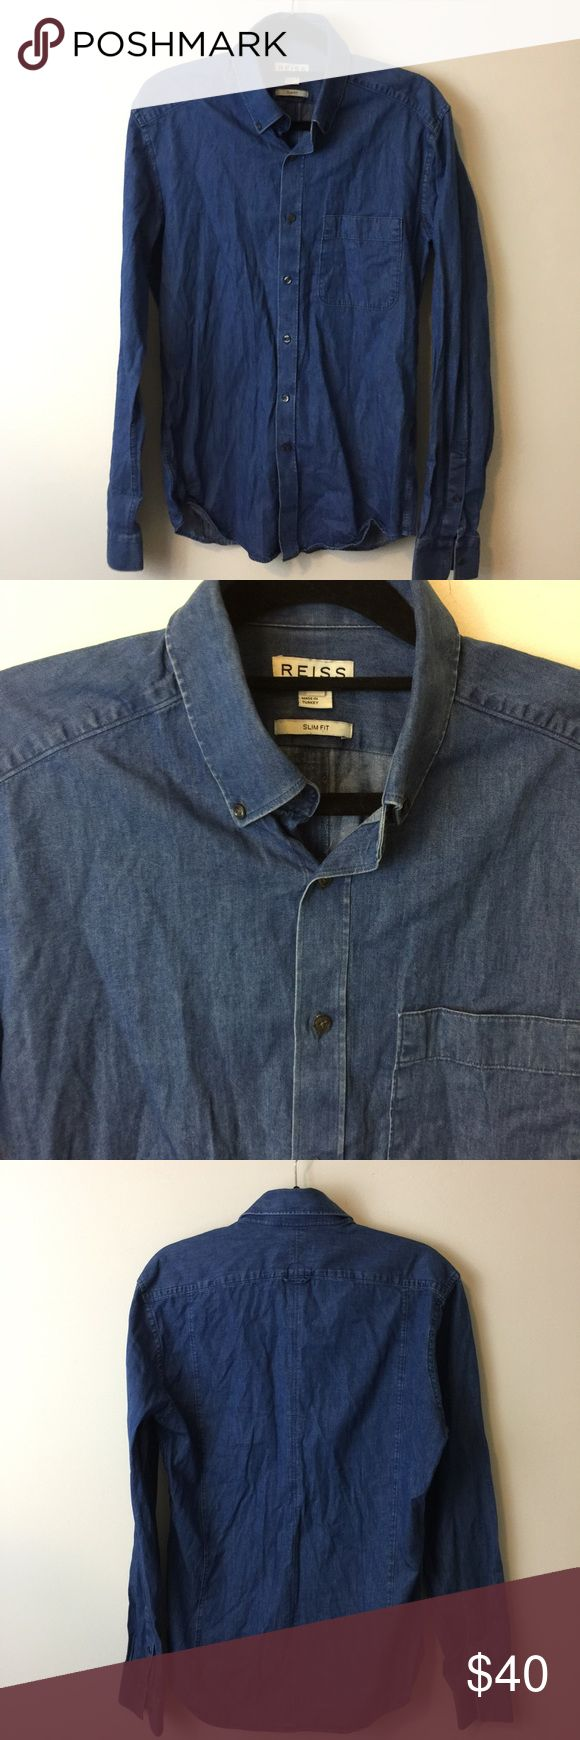 REISS Blue Denim Button Down Shirt REISS blue denim cotton Button Down Shirt- has a soft body and a slim cut. In good condition and is a size small Reiss Tops Button Down Shirts